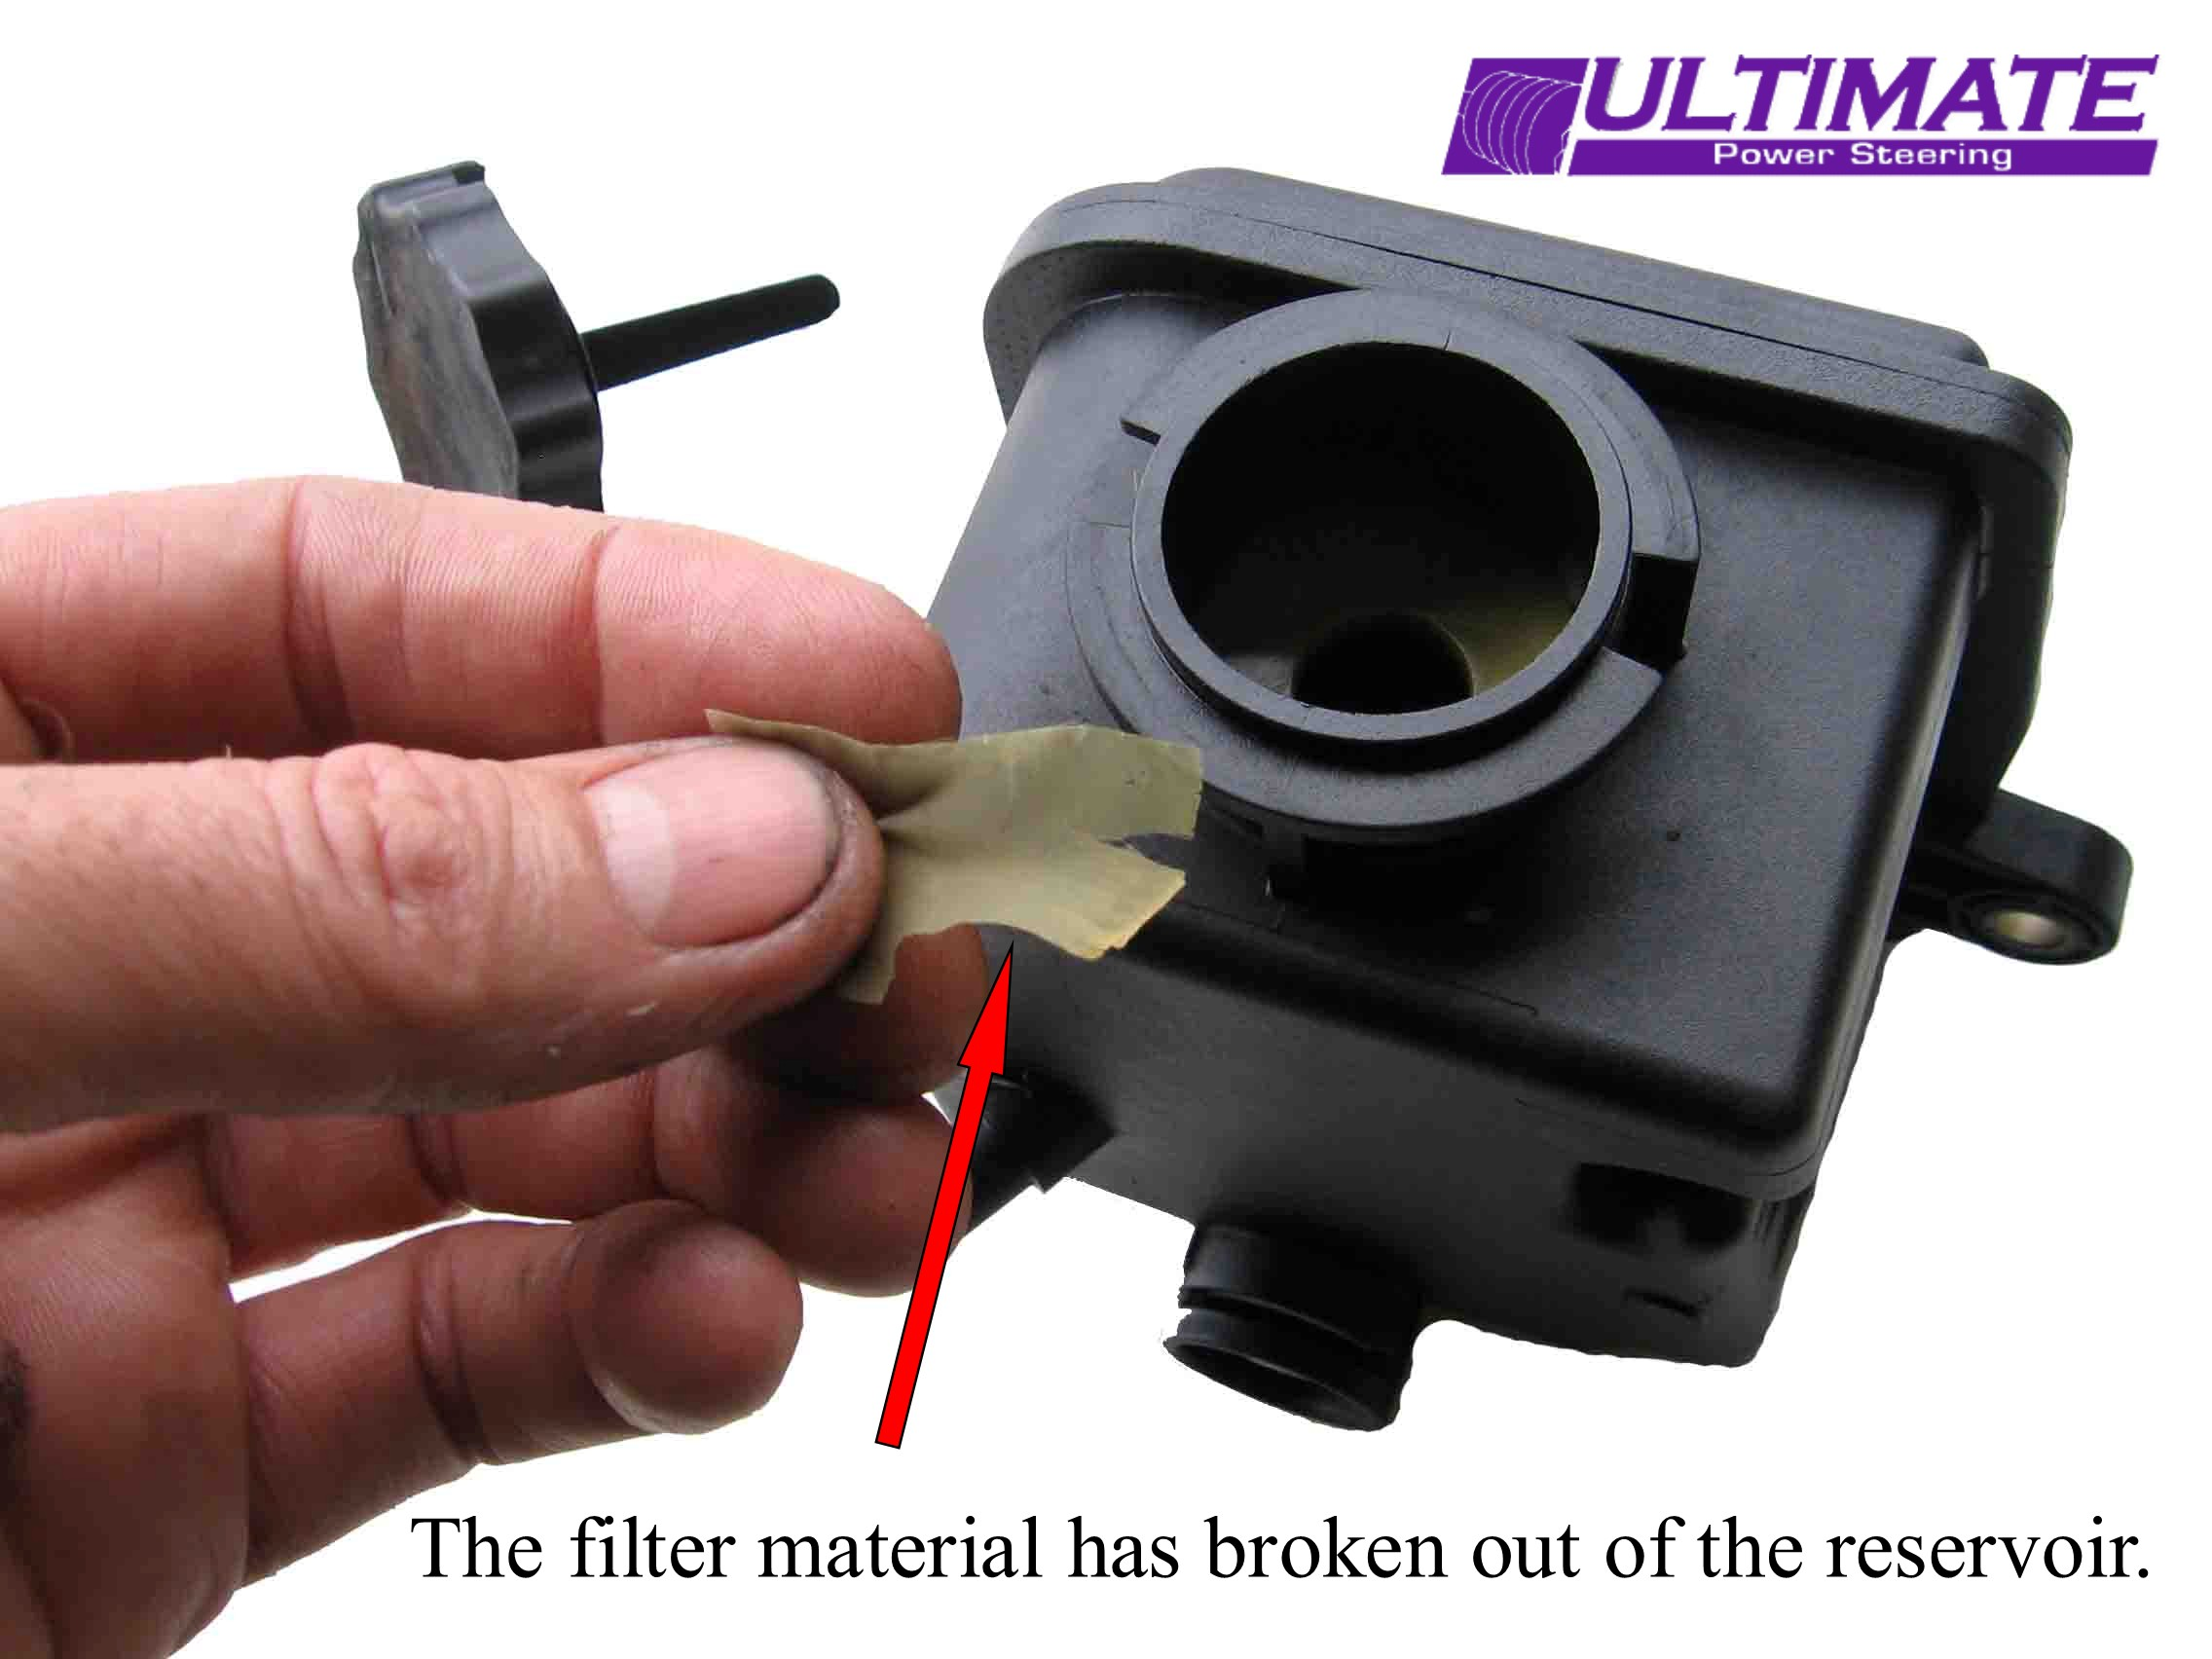 mercedes-ml-320-power-steering-pump-reservoir-damaged-filter.jpg